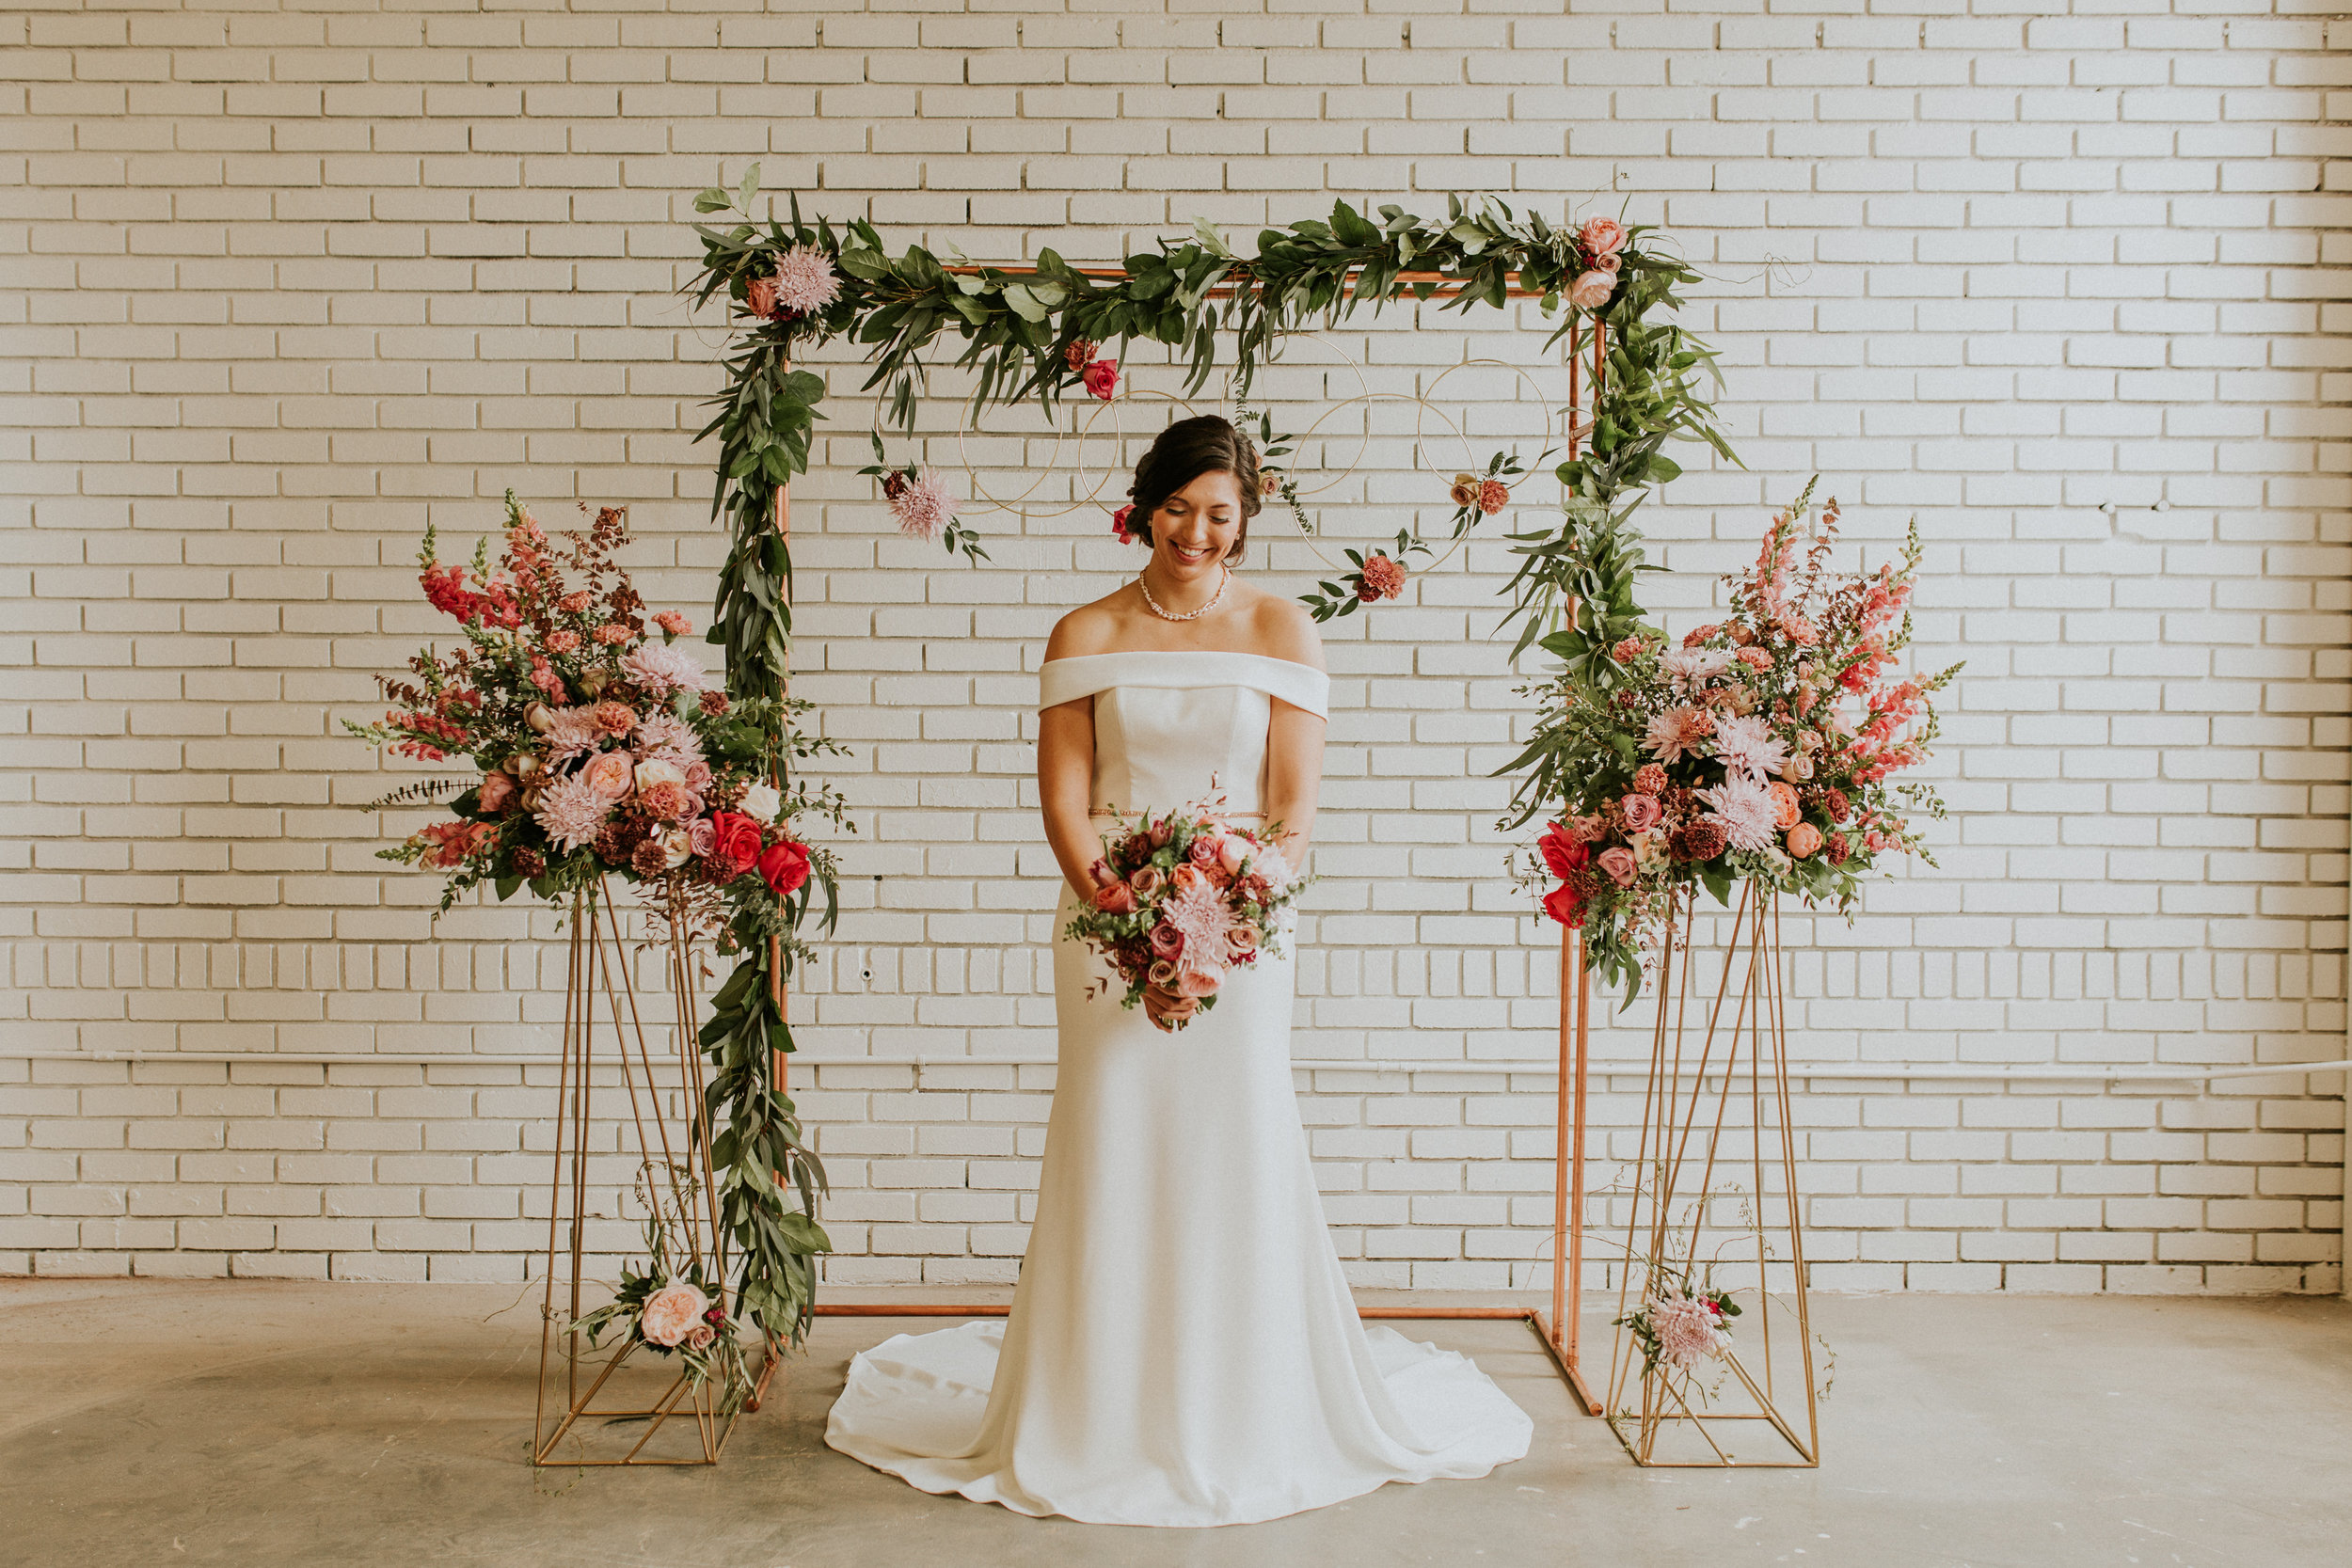 Dusty Rose & Mauve Wedding Flowers and Ceremony Backdrop Ideas by Bartz Viviano Styled by Event Prep and Photographed by Adore Wedding Photography - As Seen In the Toledo Wedding Guide